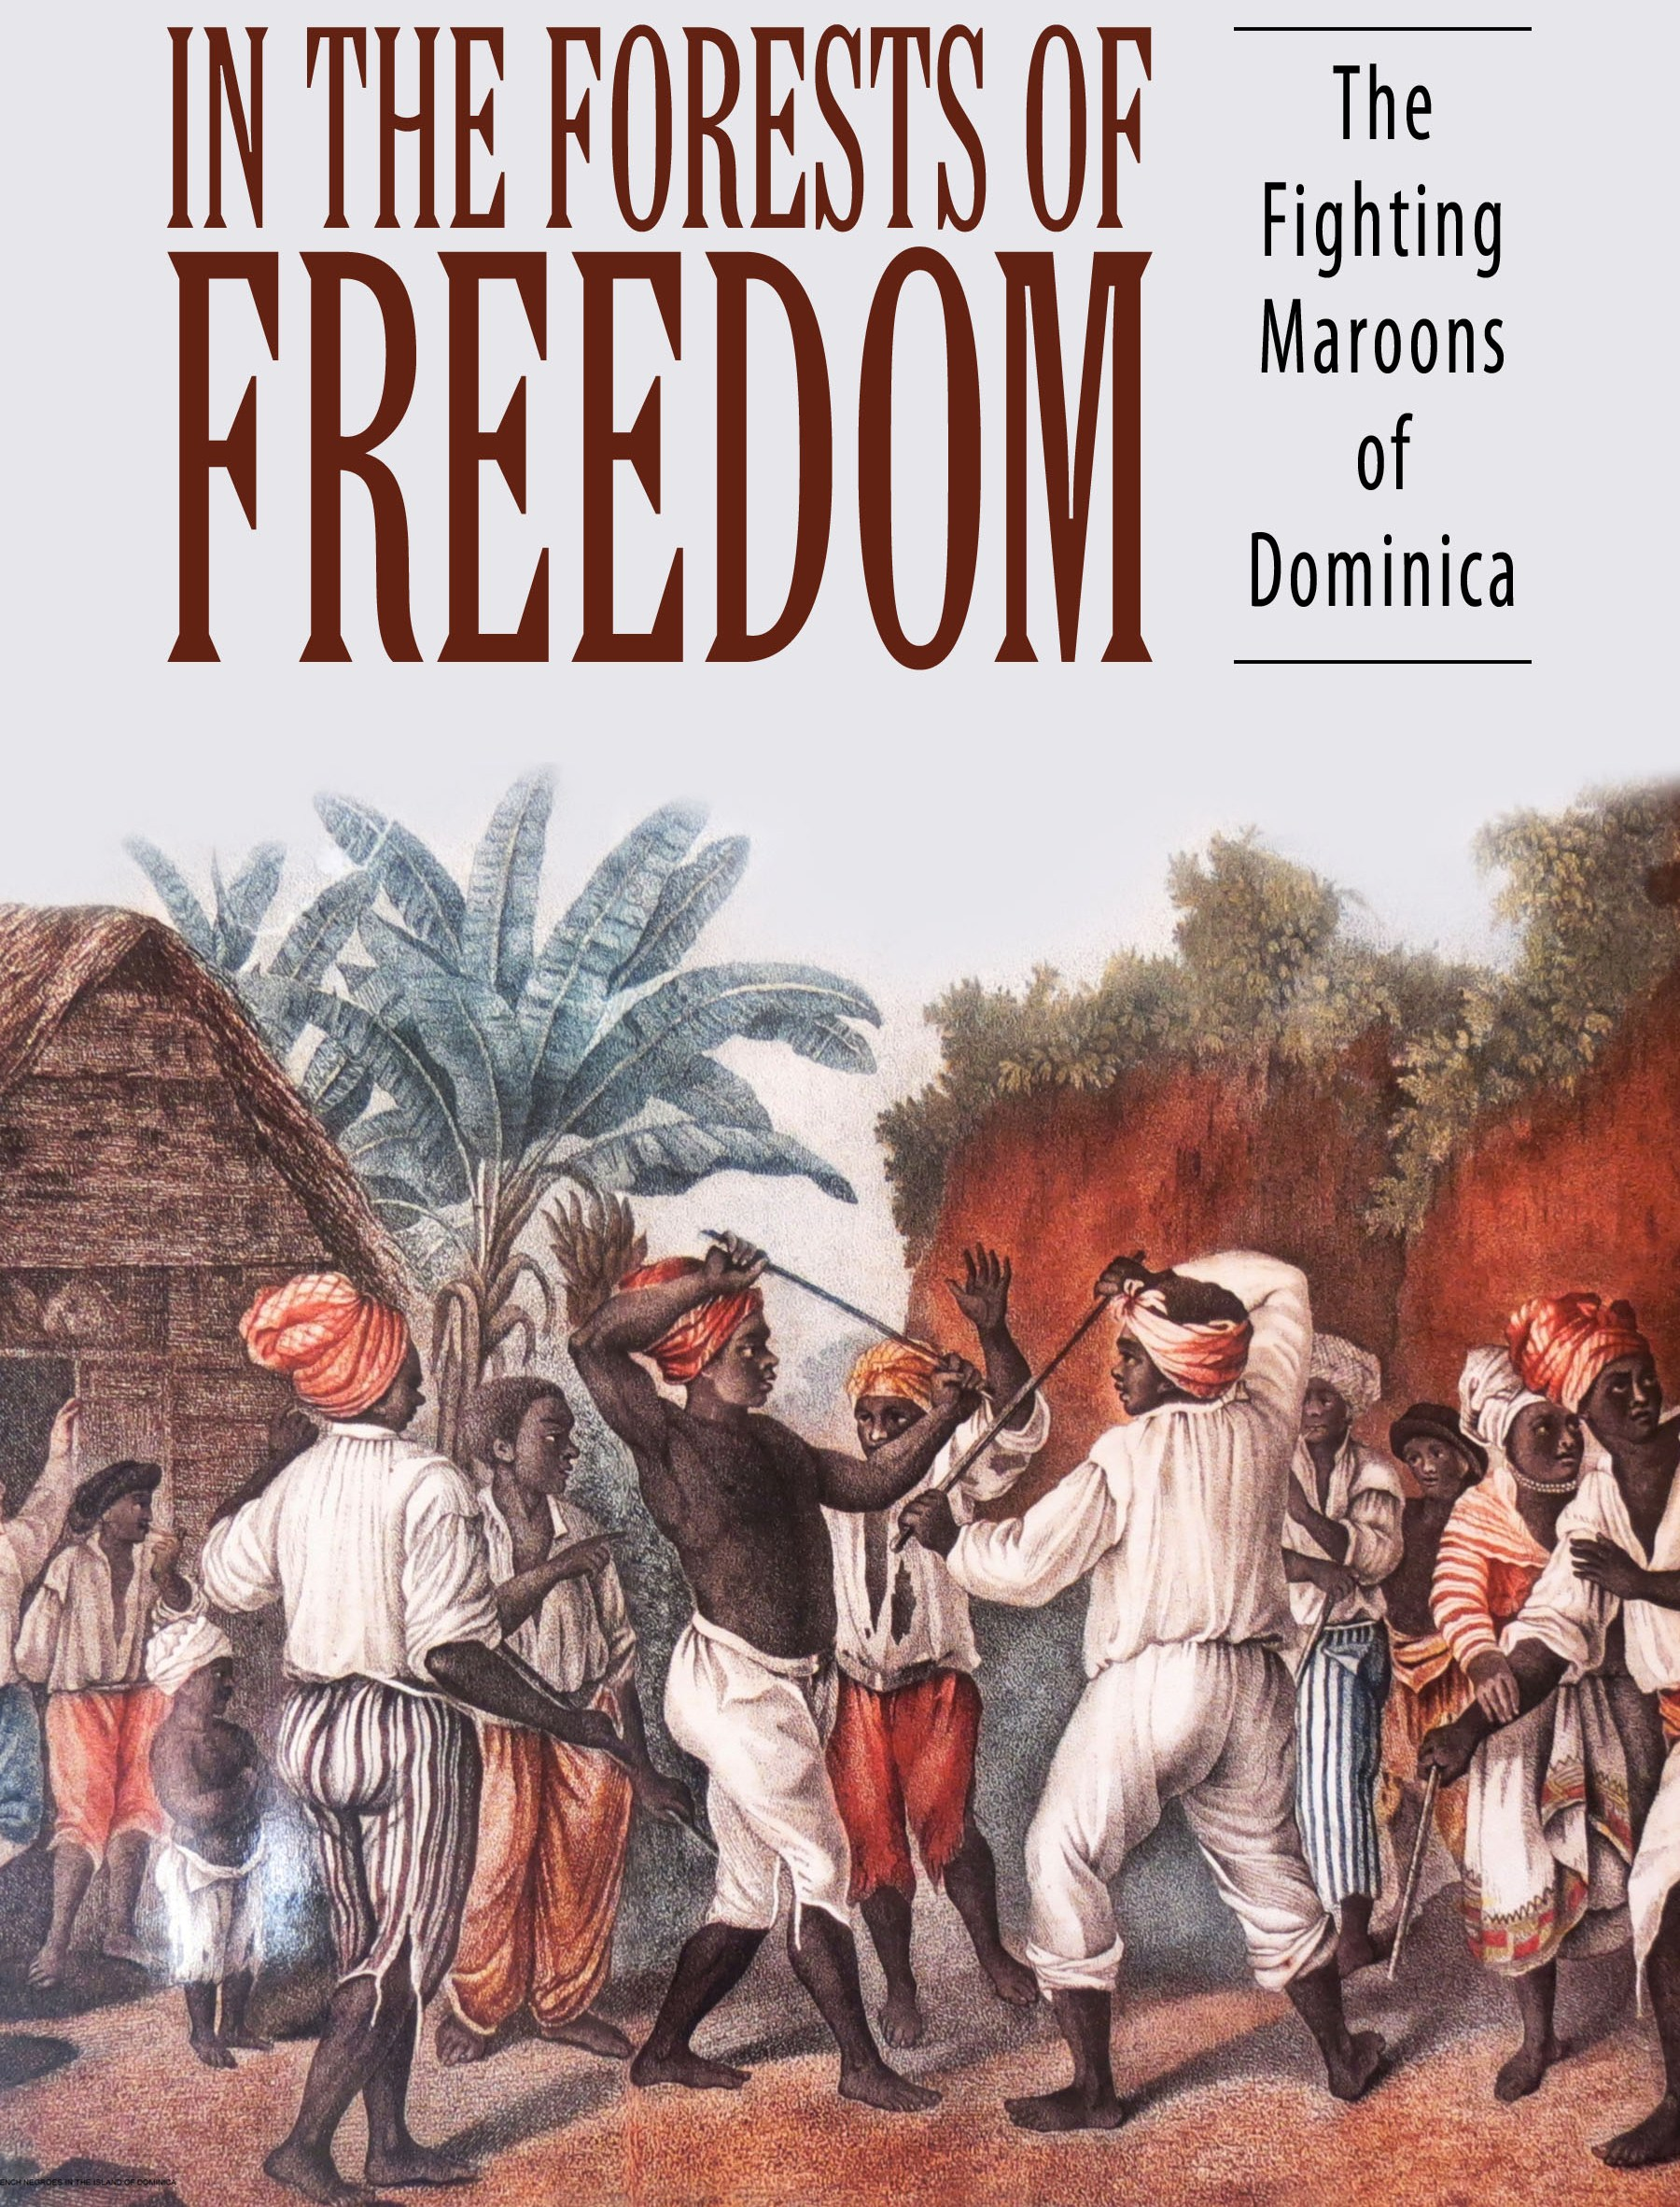 US University buys rights to Dominica book